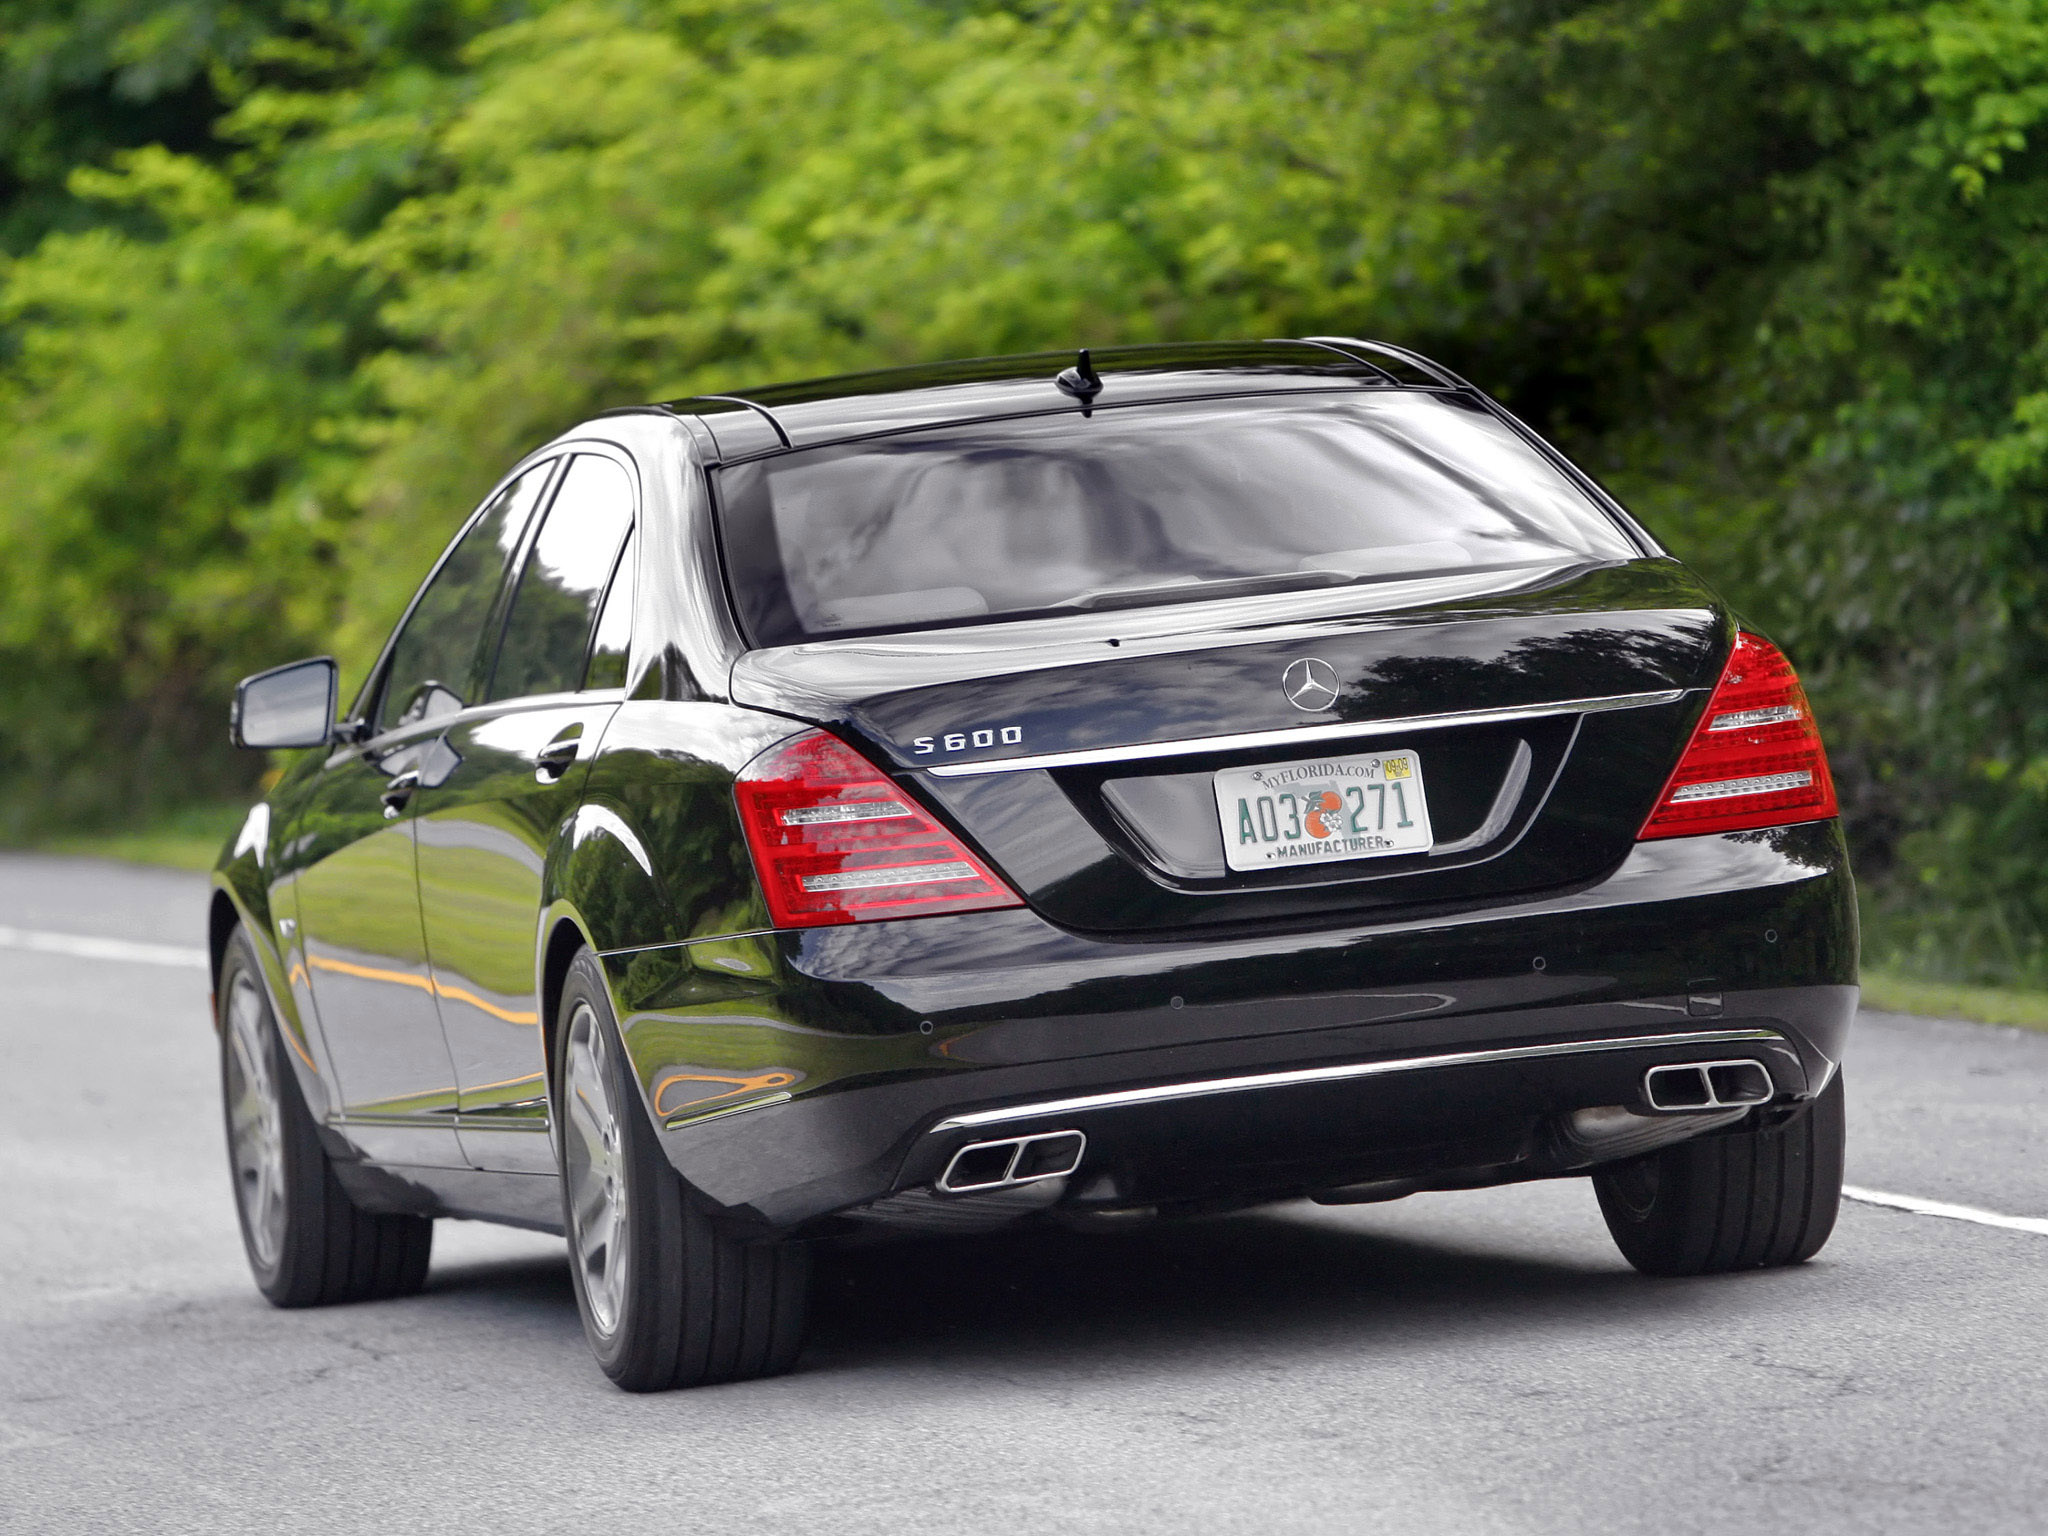 Mercedes s klasse s600 usa w221 2009 mercedes s klasse for 2009 mercedes benz s600